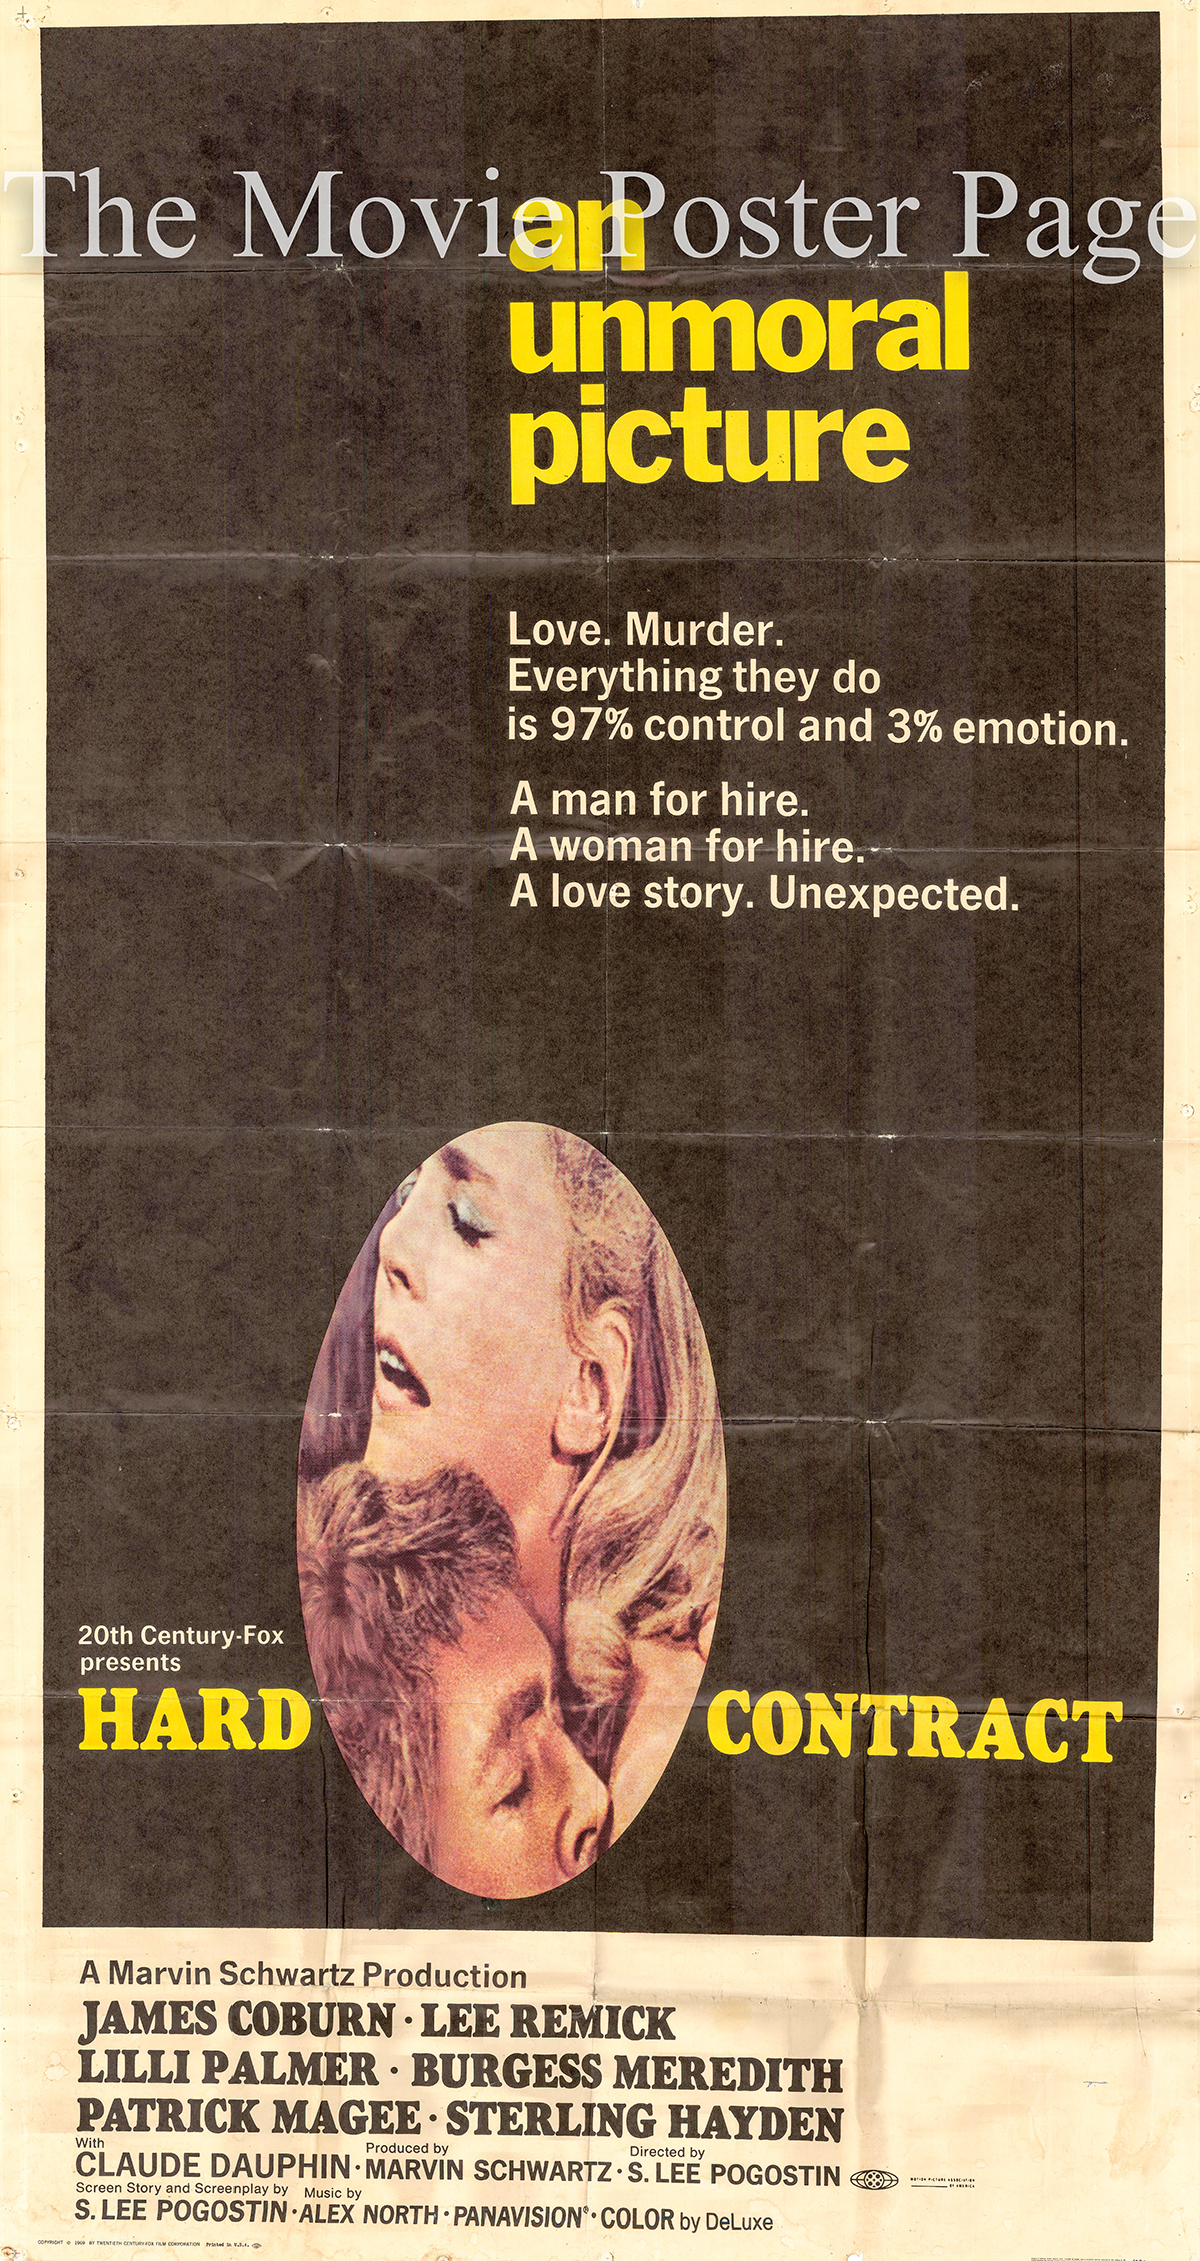 Pictured is a US three-sheet poster for the 1969 S. Lee Pogostin film Hard Contract starring James Coburn as John Cunningham.